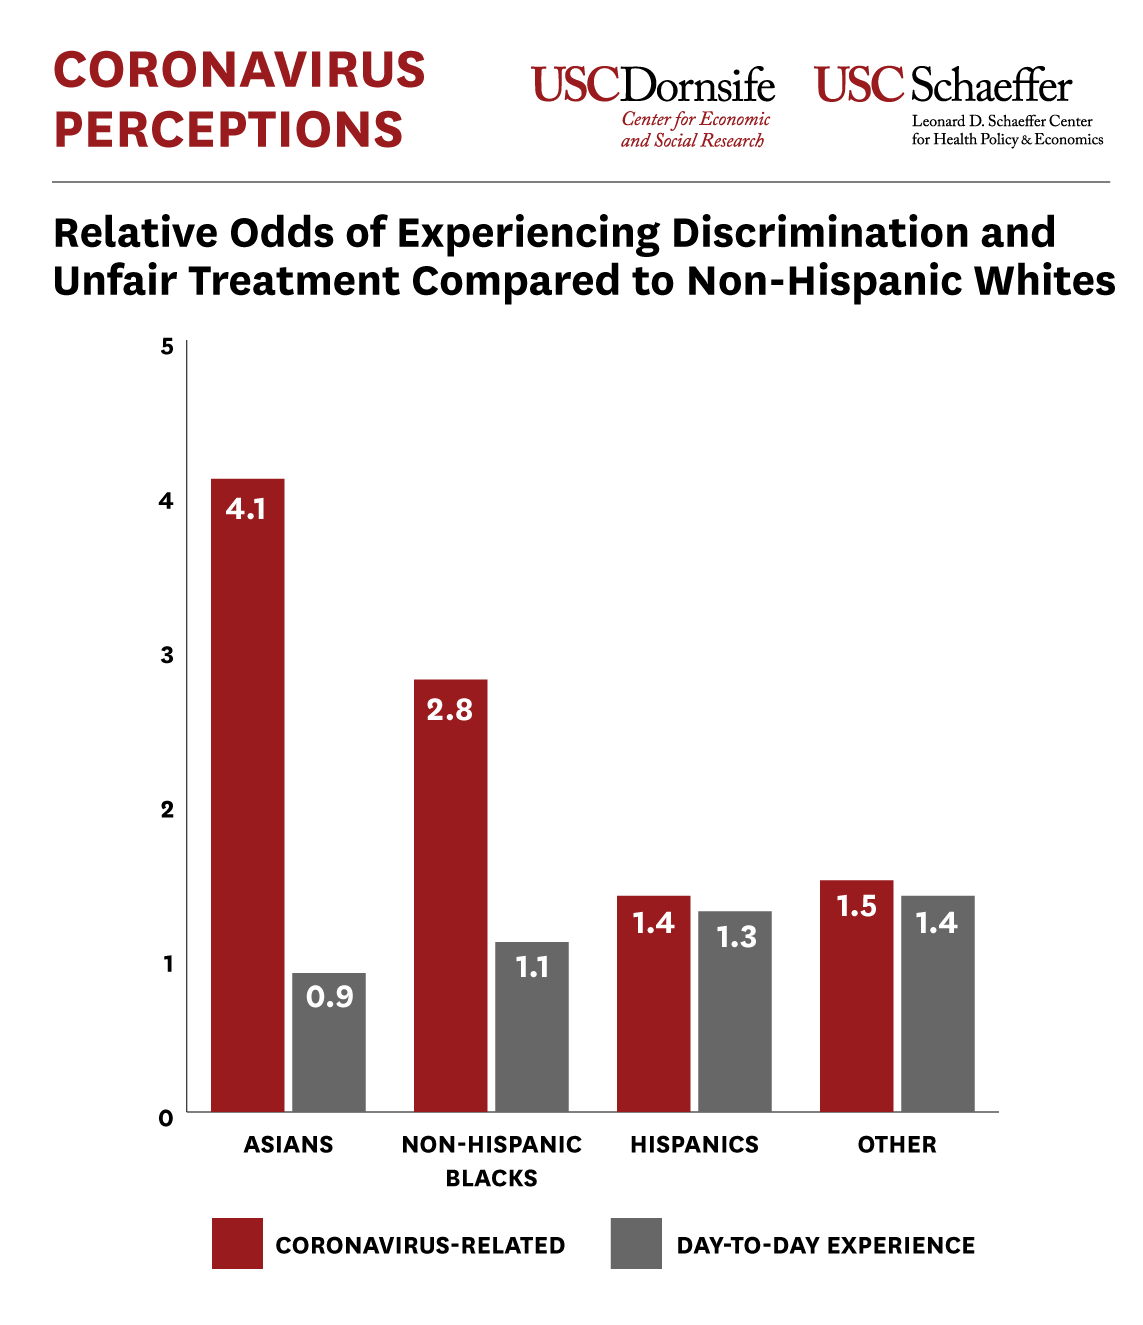 Relative Odds of Experience Discrimination and Unfair Treatment Compared to Non-Hispanic Whites